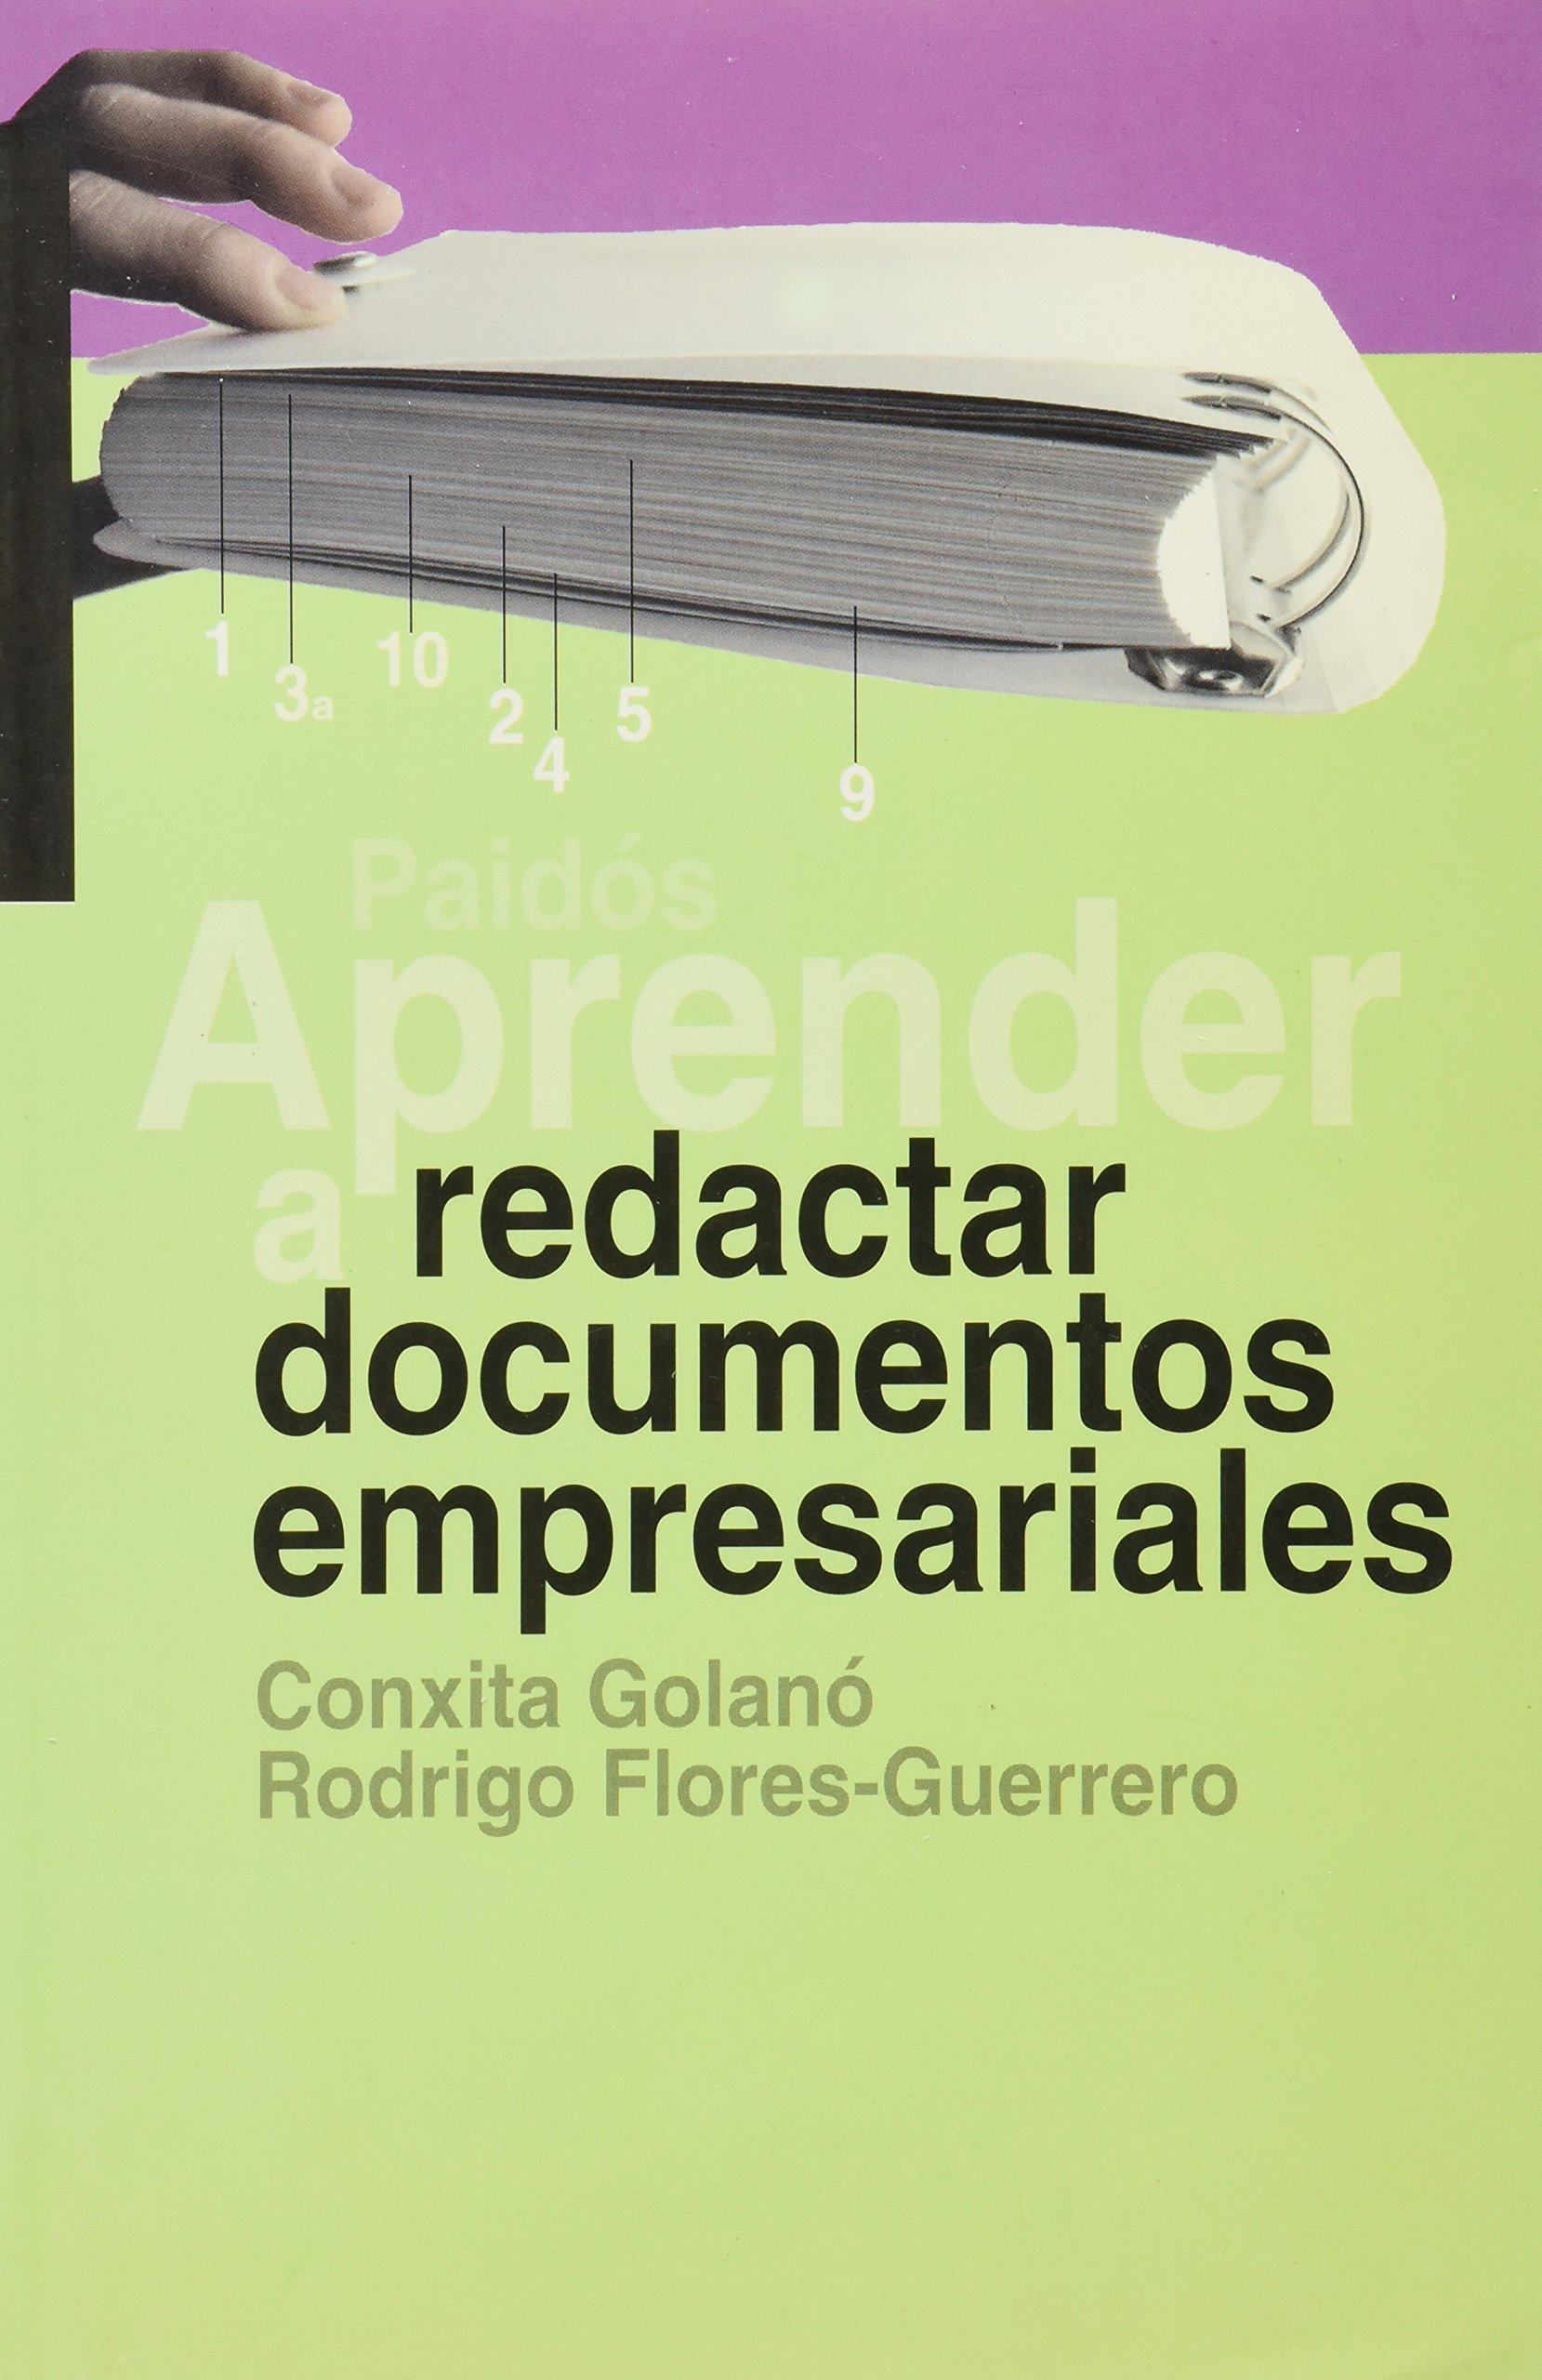 Aprender A Redactar Documentos Empresariales Learn To Write Business Documents Spanish Edition Golano Conxita Flore G R 9788449312090 Books